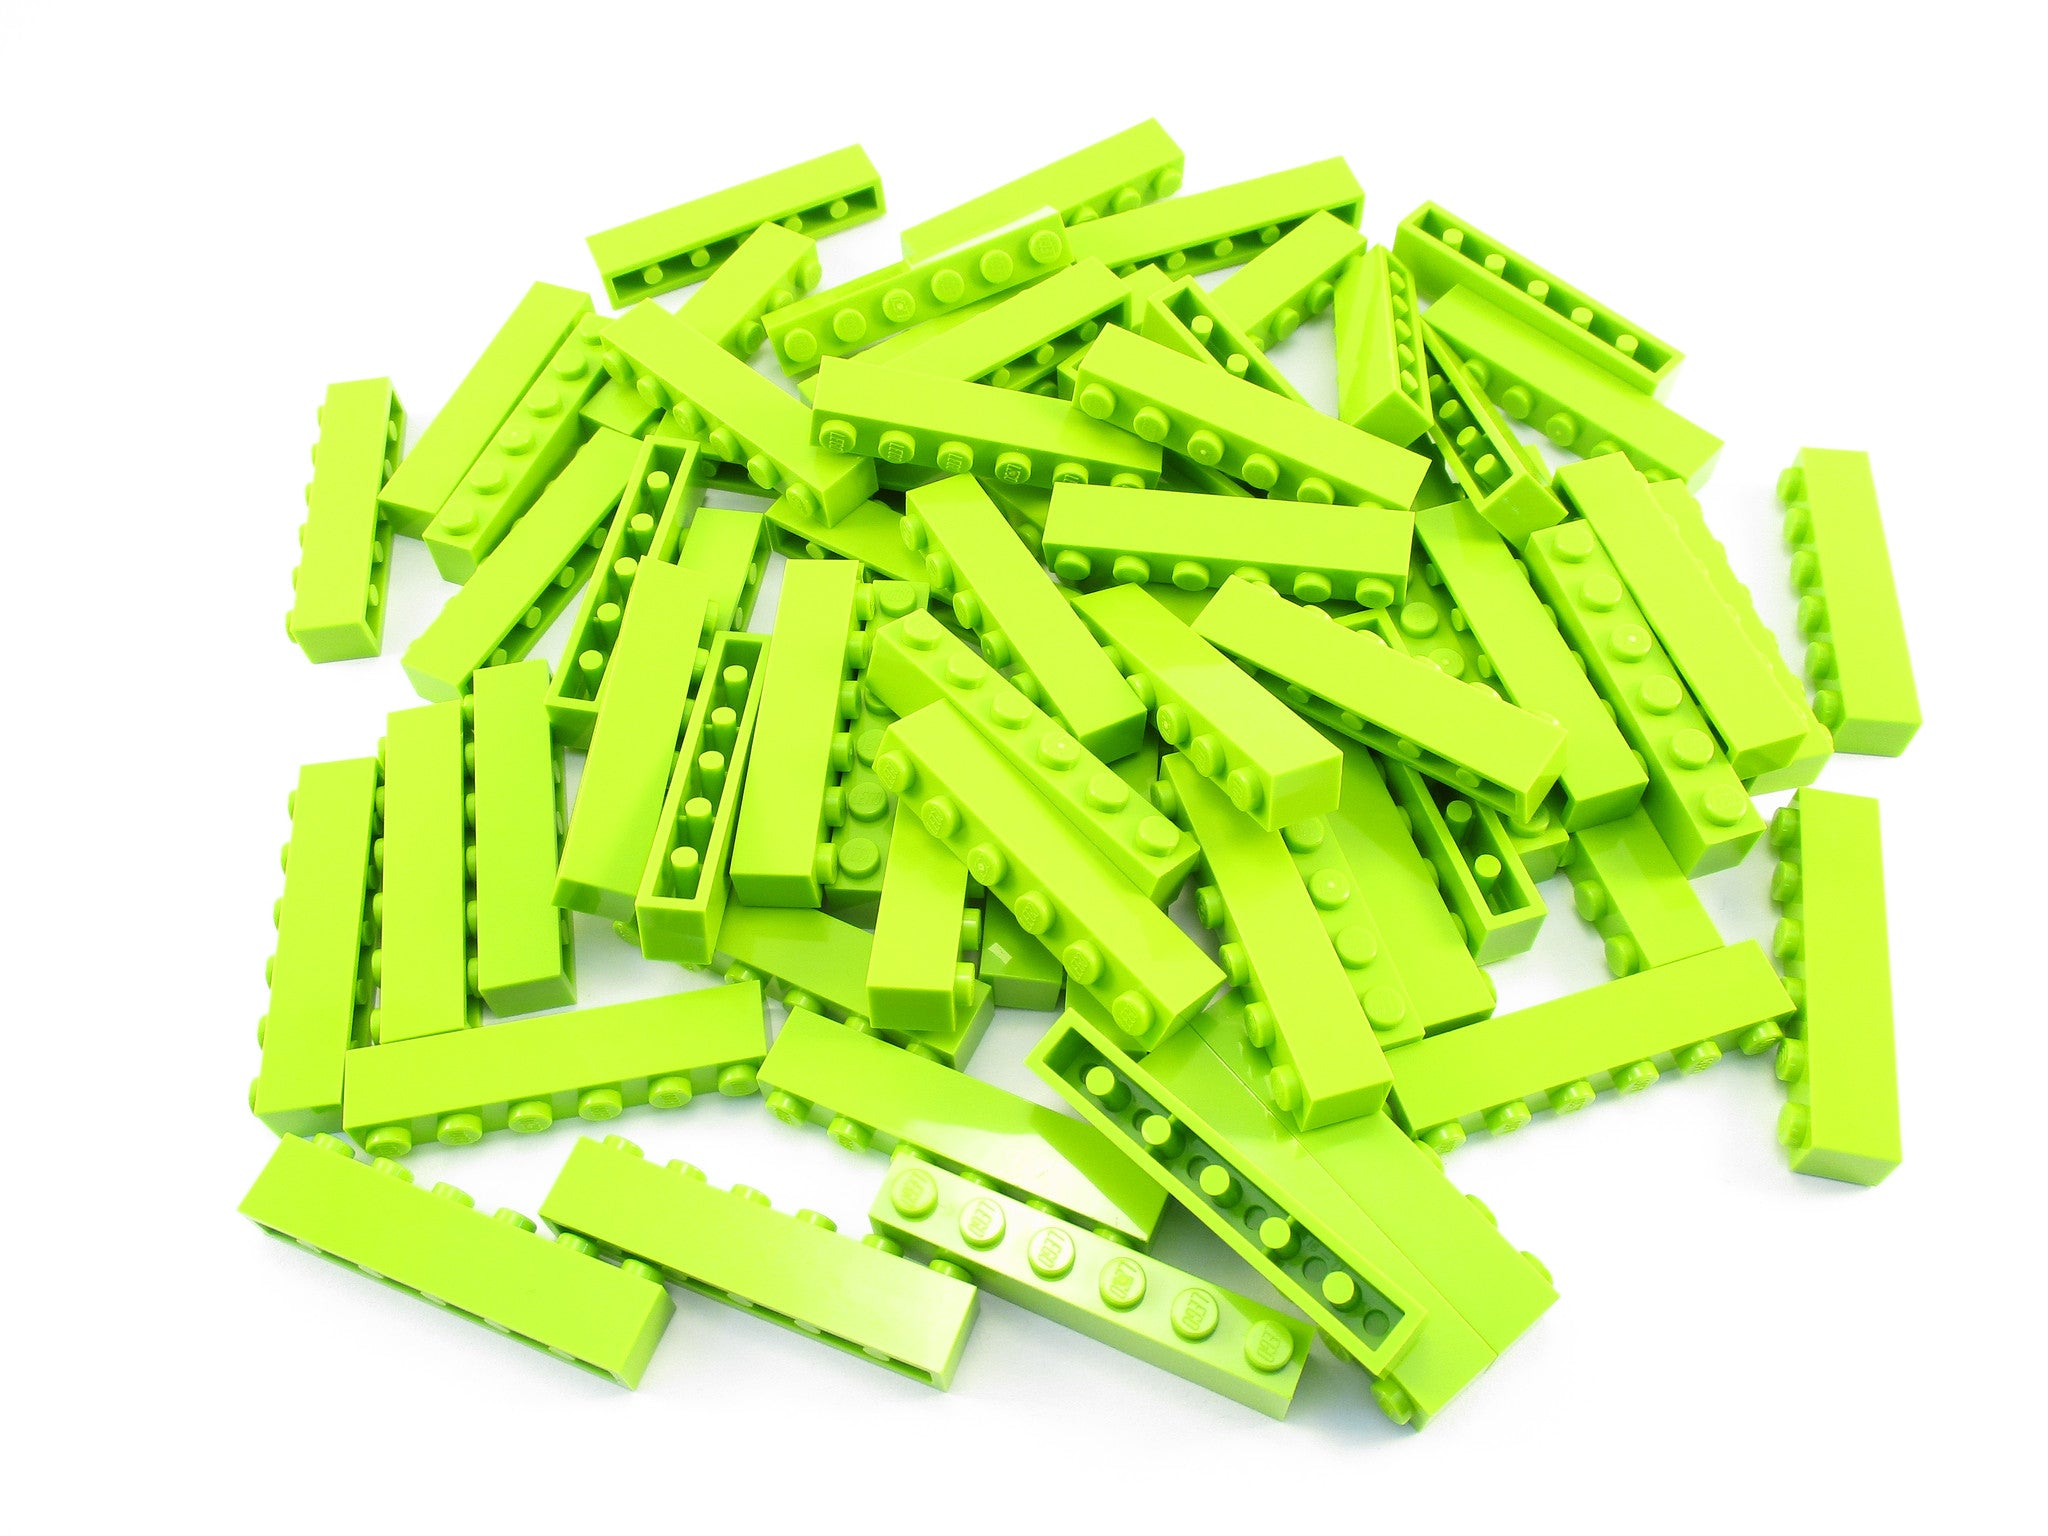 LEGO Lime Brick 1x6 Lot of 50 Parts Pieces 3009